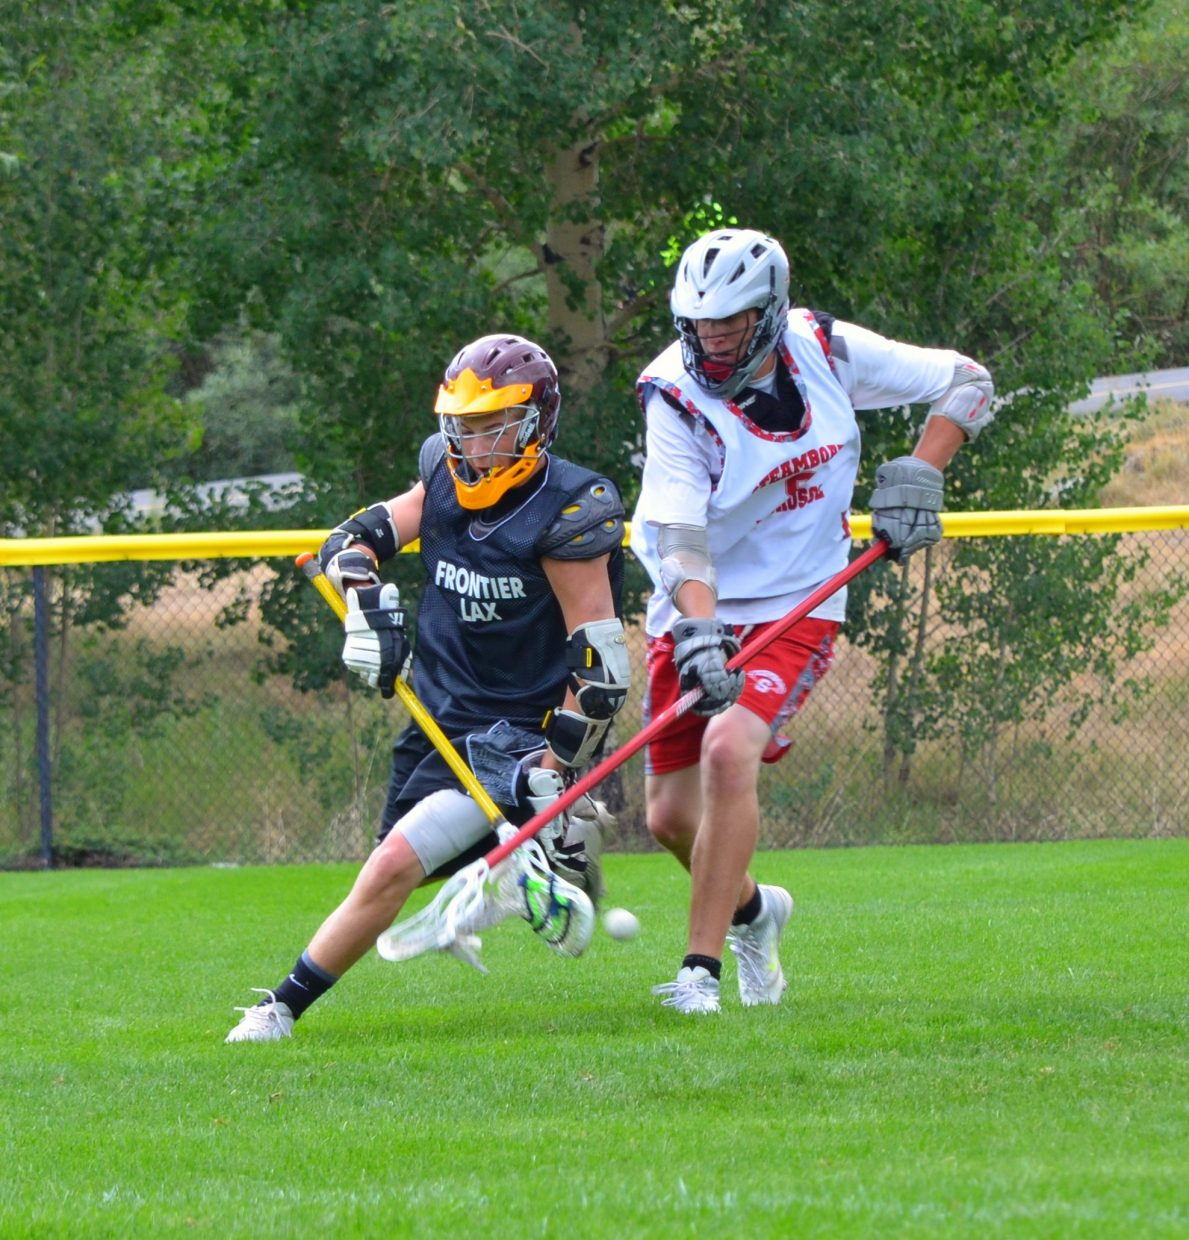 Rising senior Penn Lukens strips the ball from the opposing team at the Summit Lacrosse tournament in Breckenridge this weekend. Submitted by Shannon Lukens.